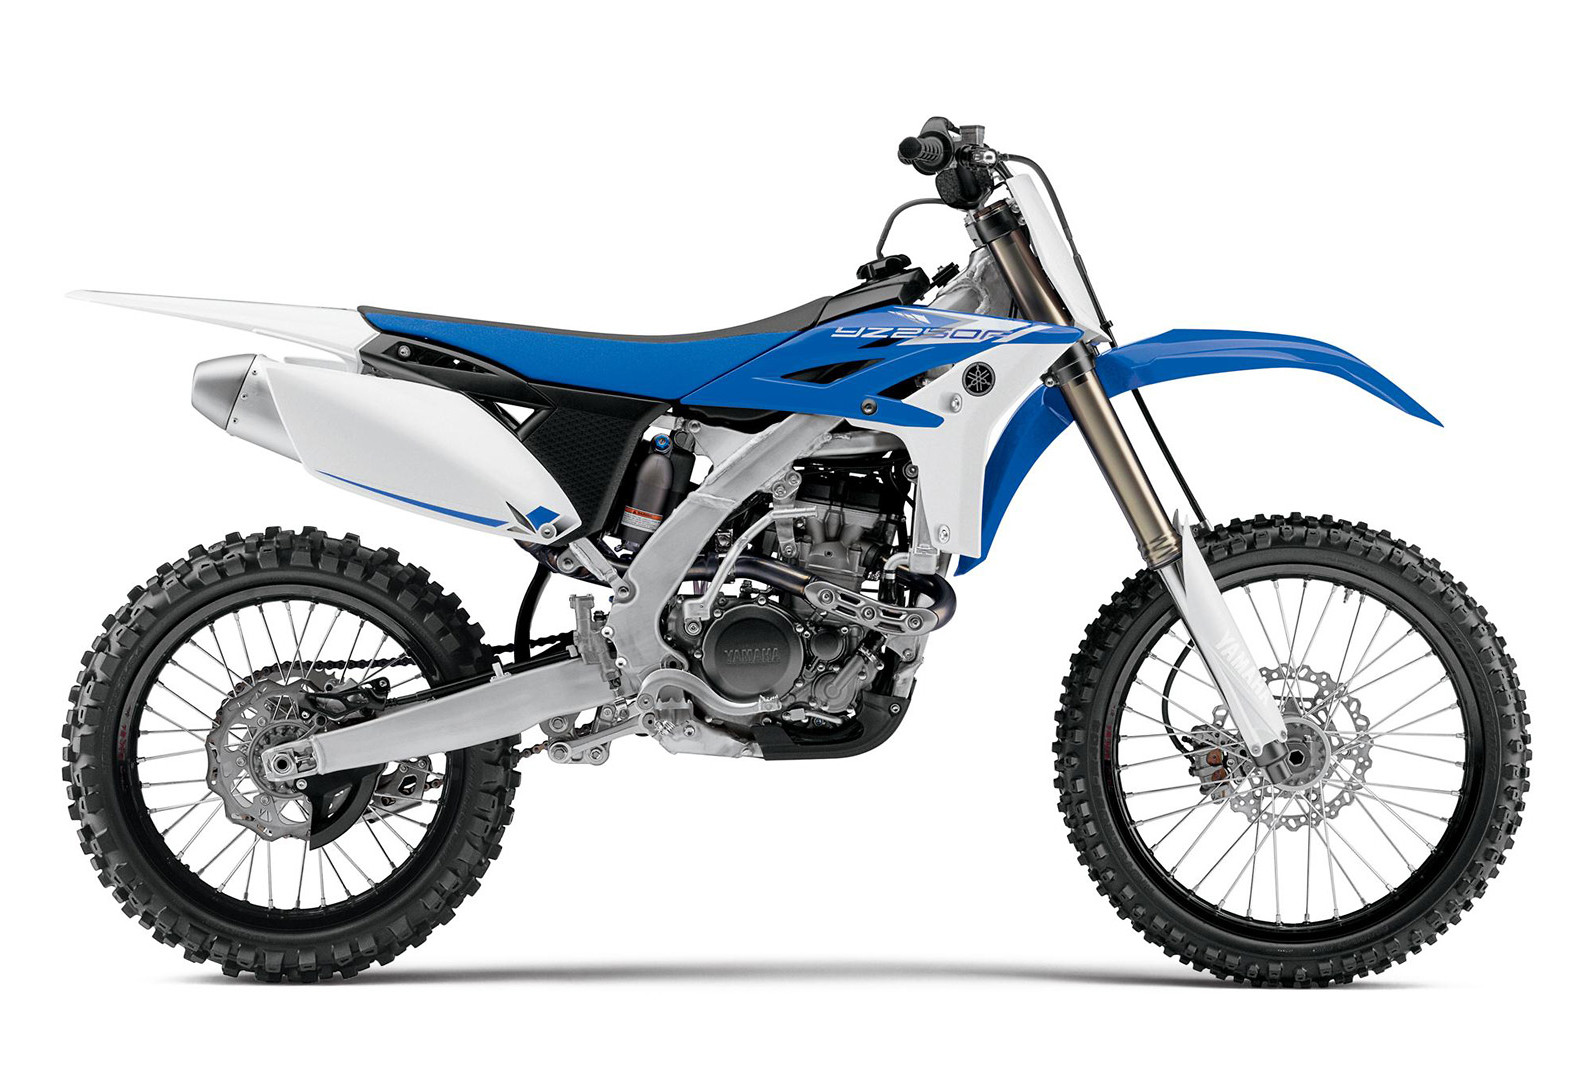 2013 yamaha yz250f reviews comparisons specs. Black Bedroom Furniture Sets. Home Design Ideas